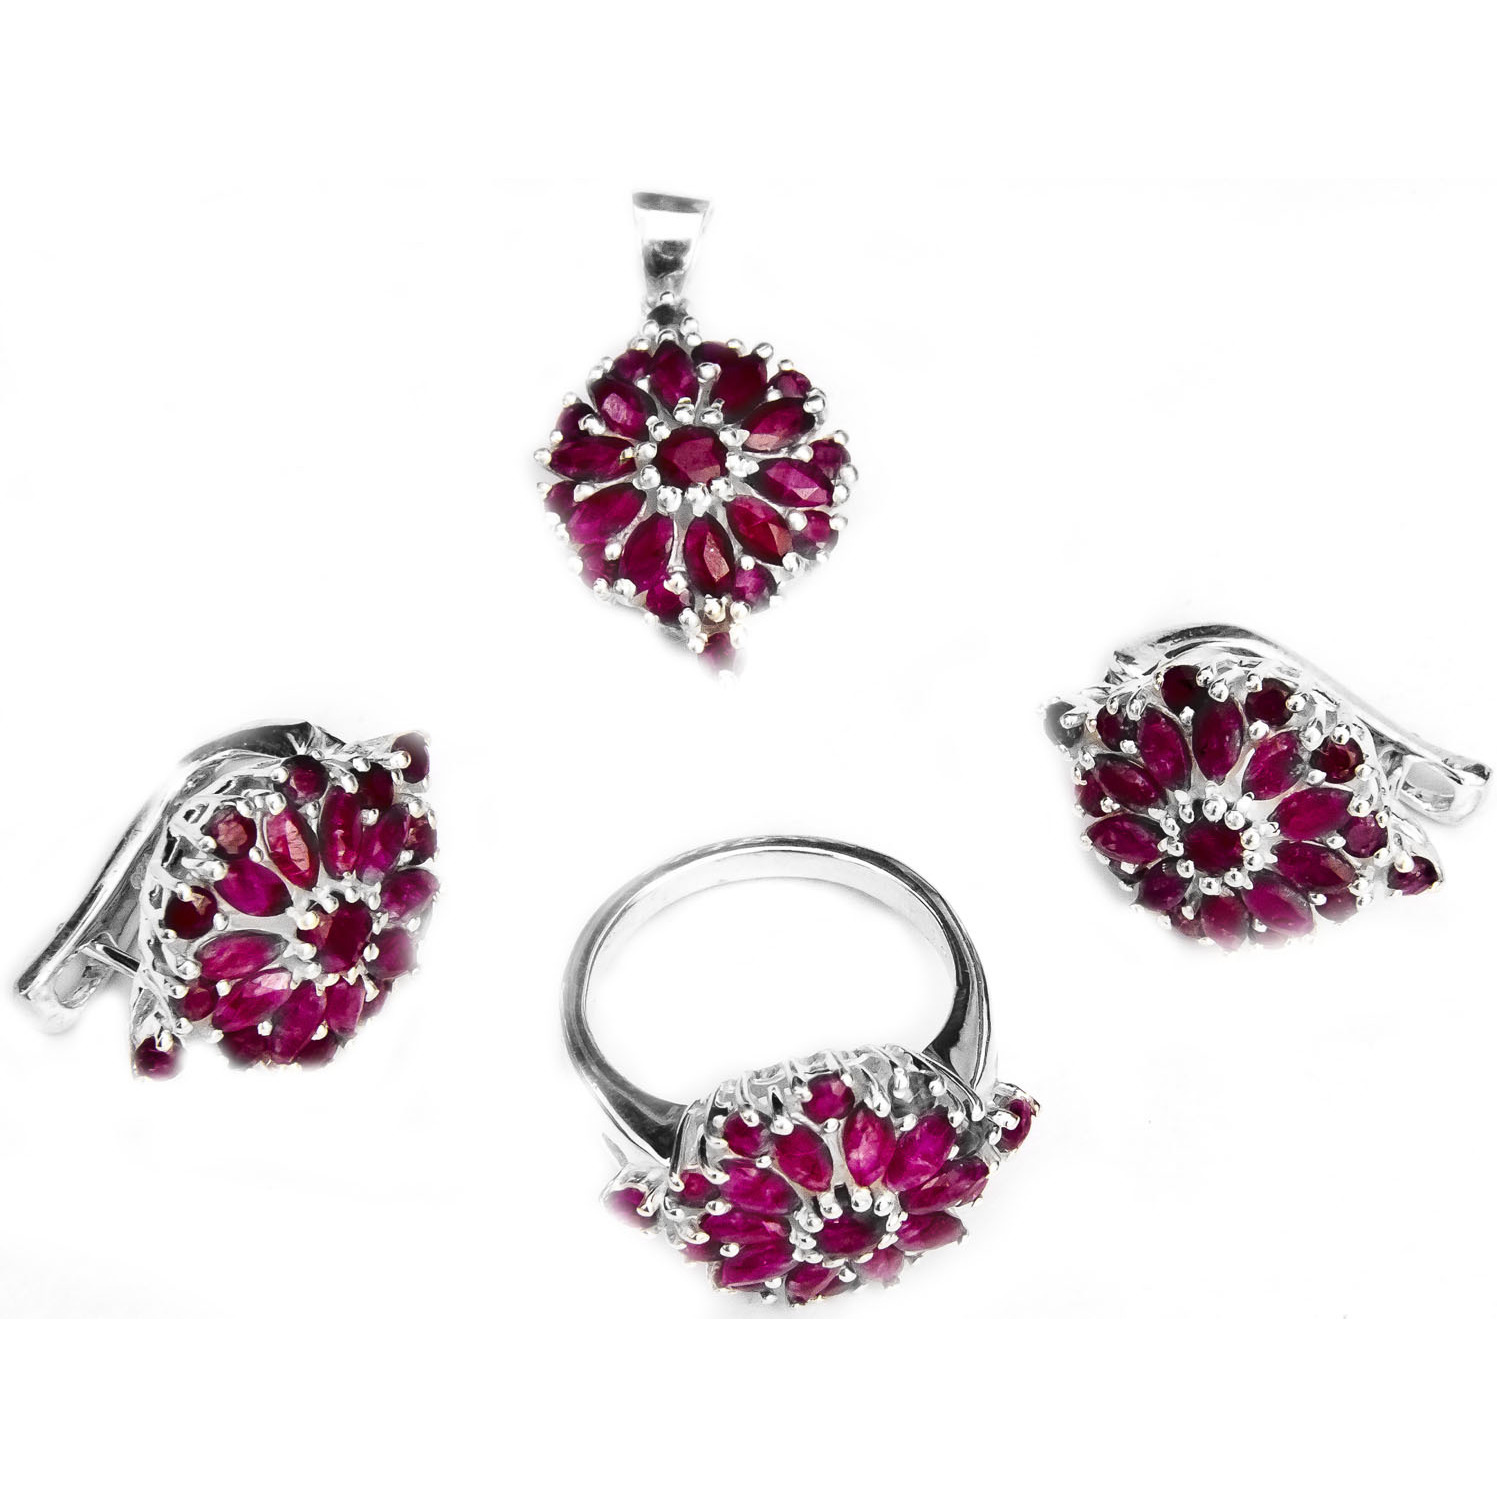 Faceted Ruby Pendant with Earrings and Ring Set